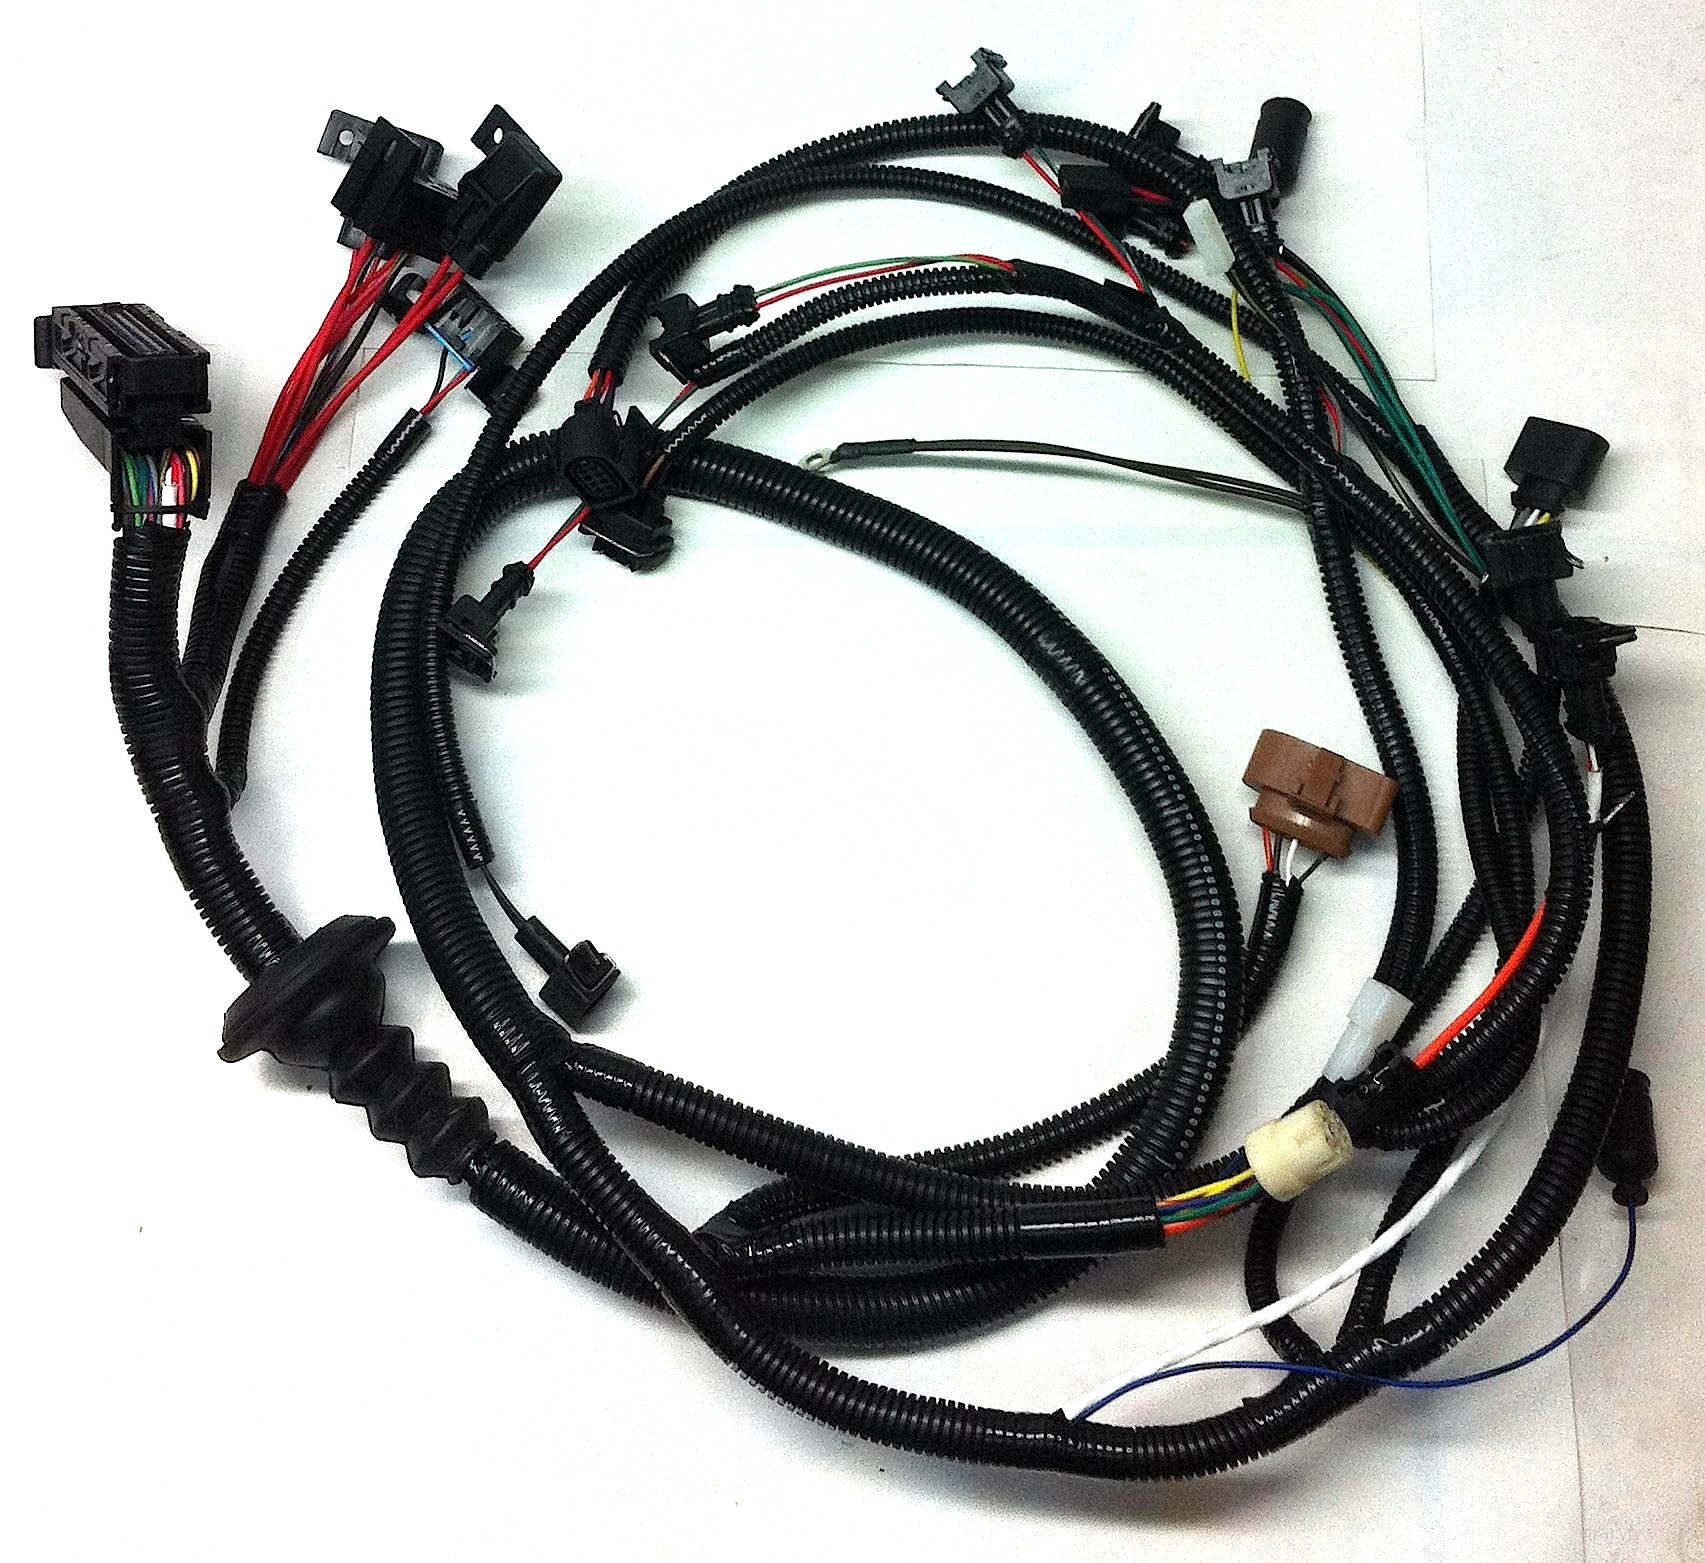 2lr tiico conversion wiring harness foreign auto. Black Bedroom Furniture Sets. Home Design Ideas